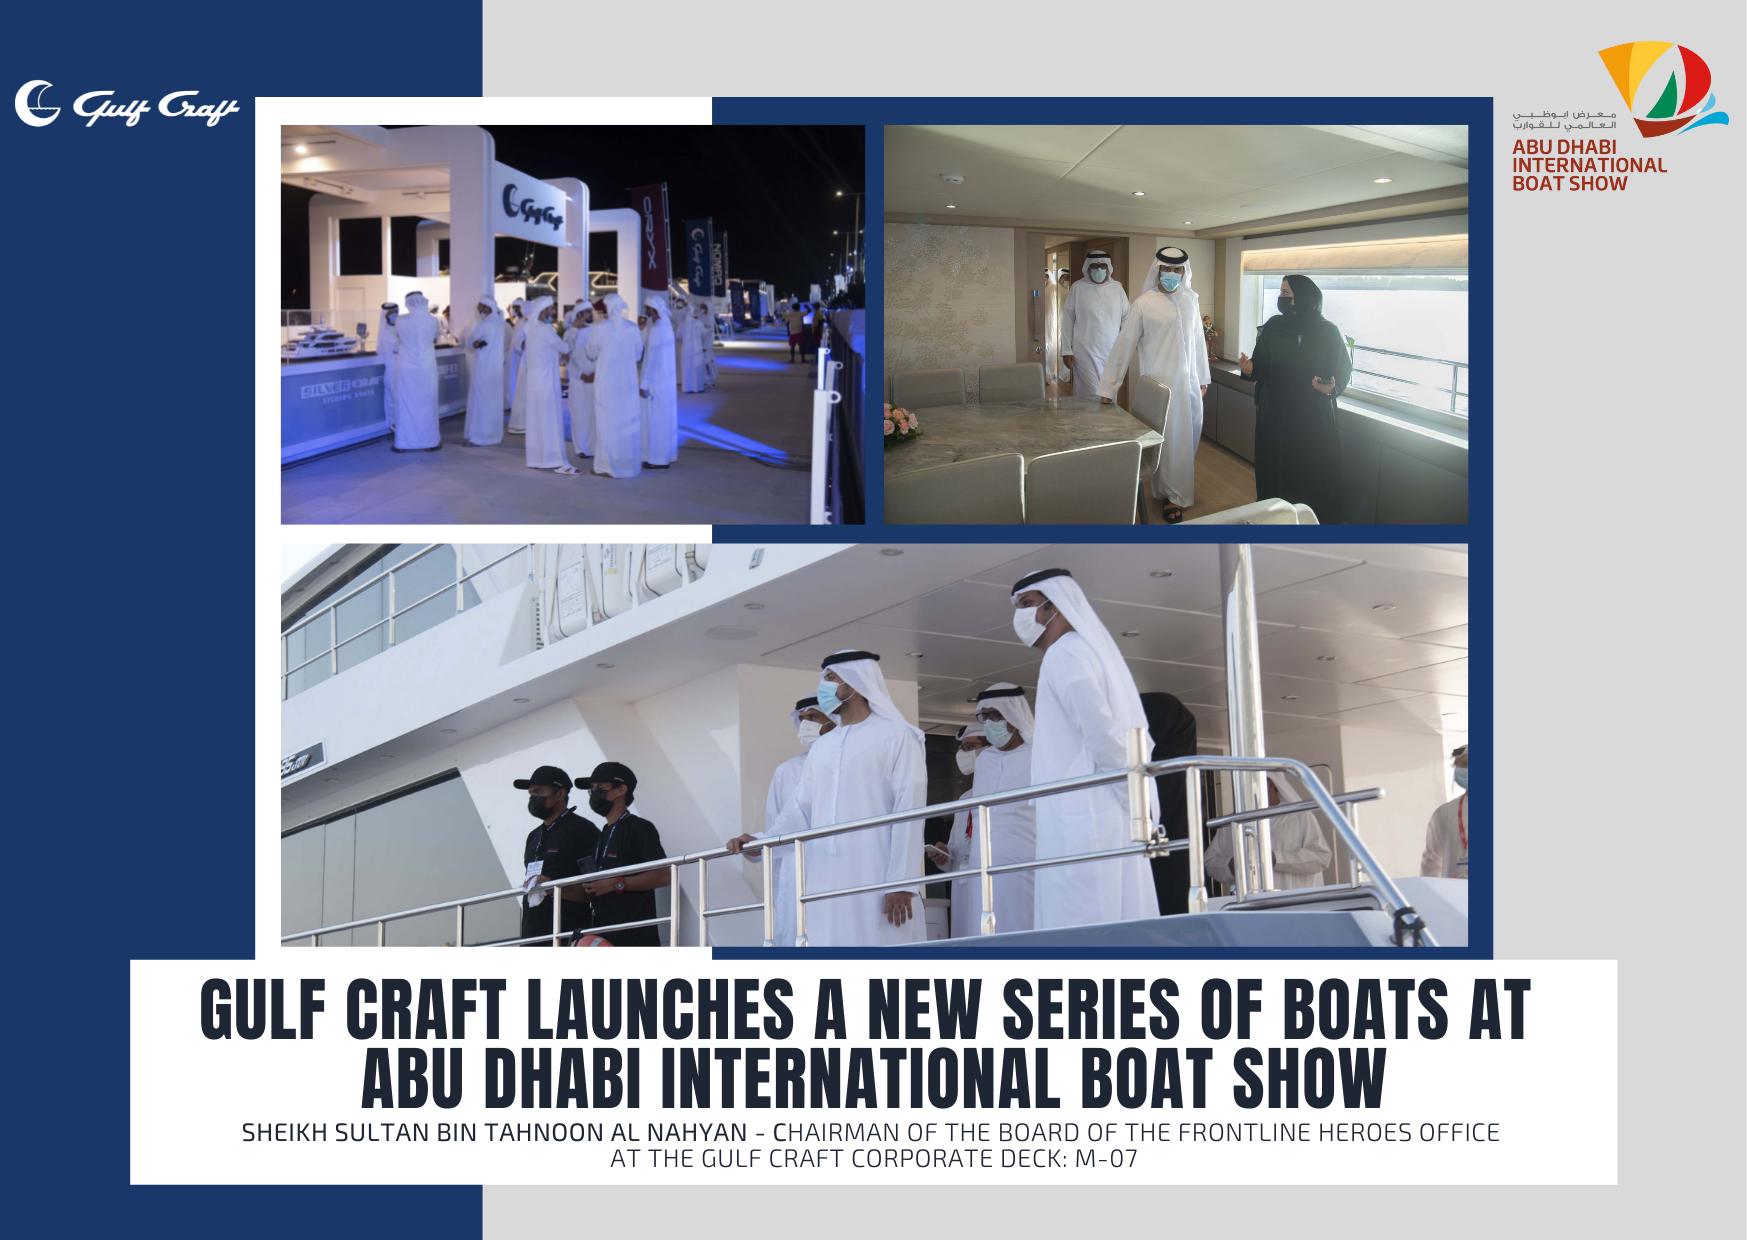 GULF CRAFT LAUNCHES A NEW SERIES OF BOATS AT ABU DHABI INTERNATIONAL BOAT SHOW